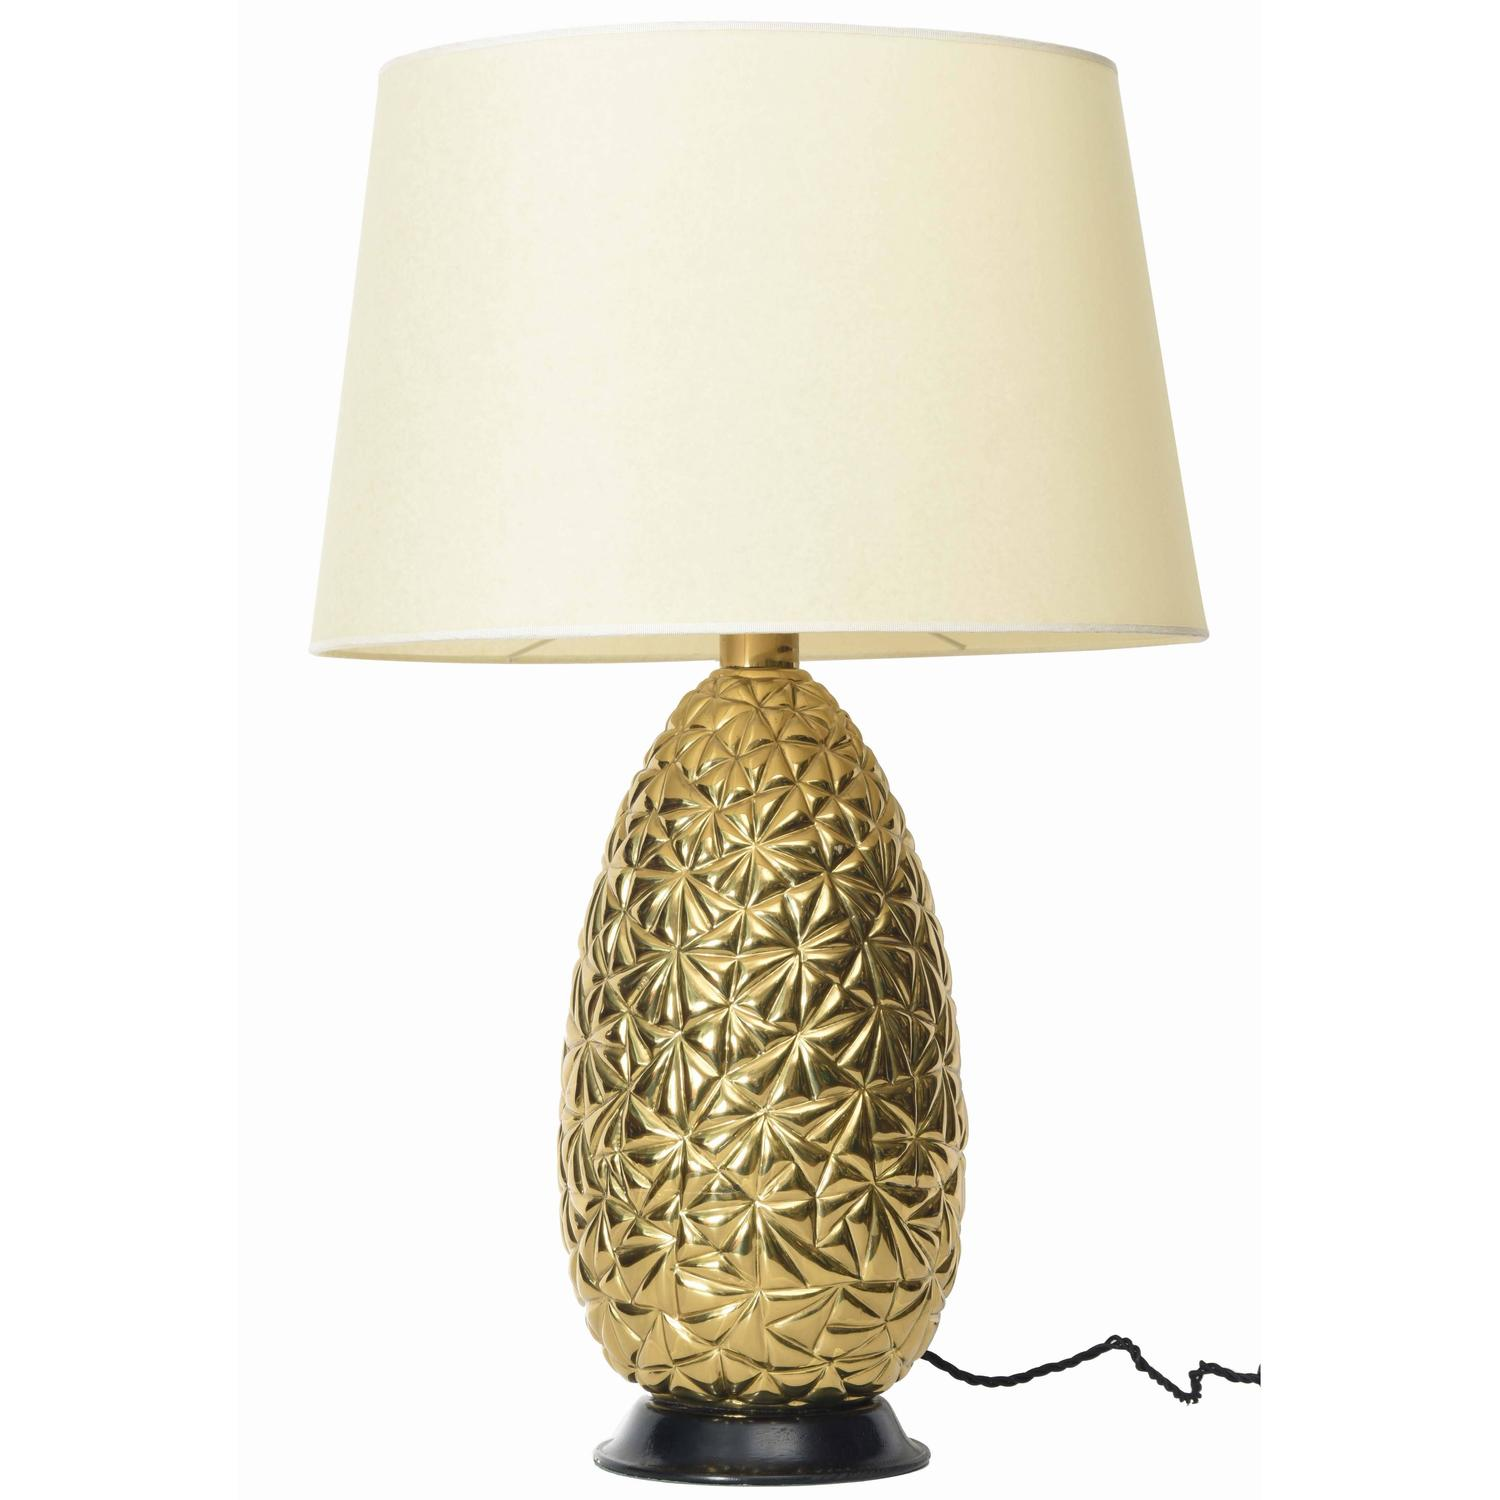 brass pineapple table lamp for sale at 1stdibs. Black Bedroom Furniture Sets. Home Design Ideas